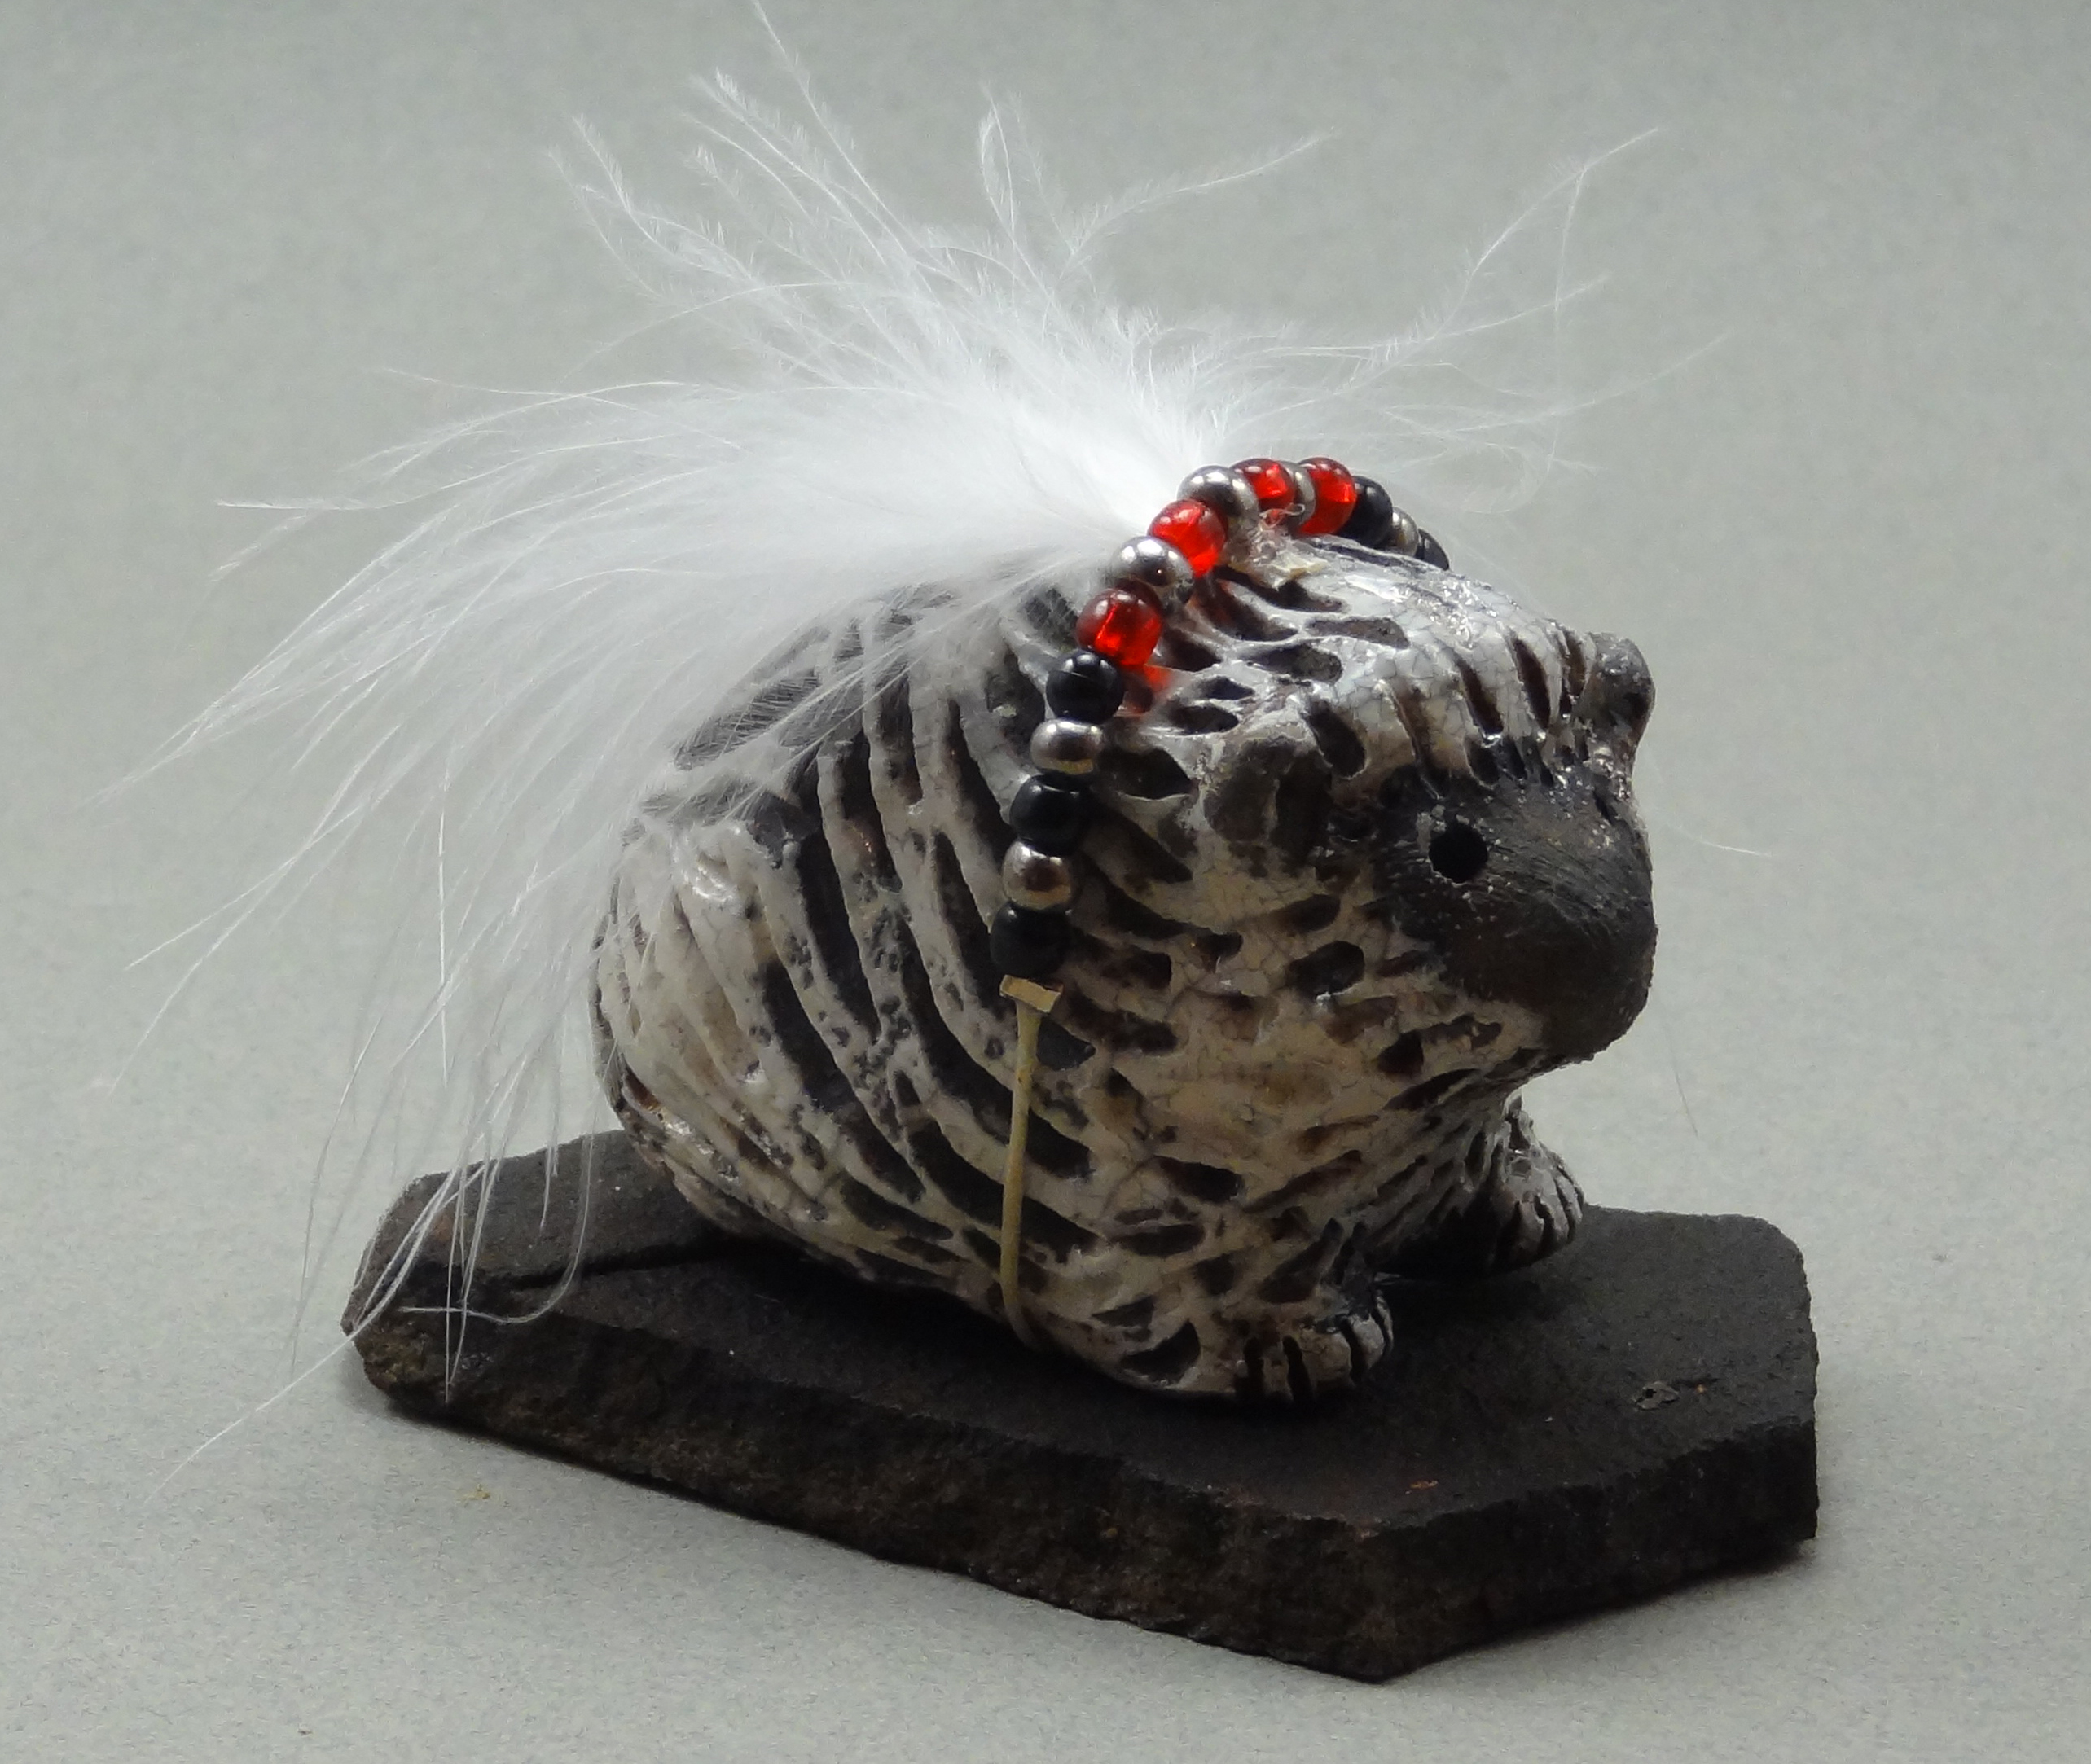 Porcupine, White Crackle glaze, raku fired, .5 x 1.5 x .5 inches, mounted on flagstone